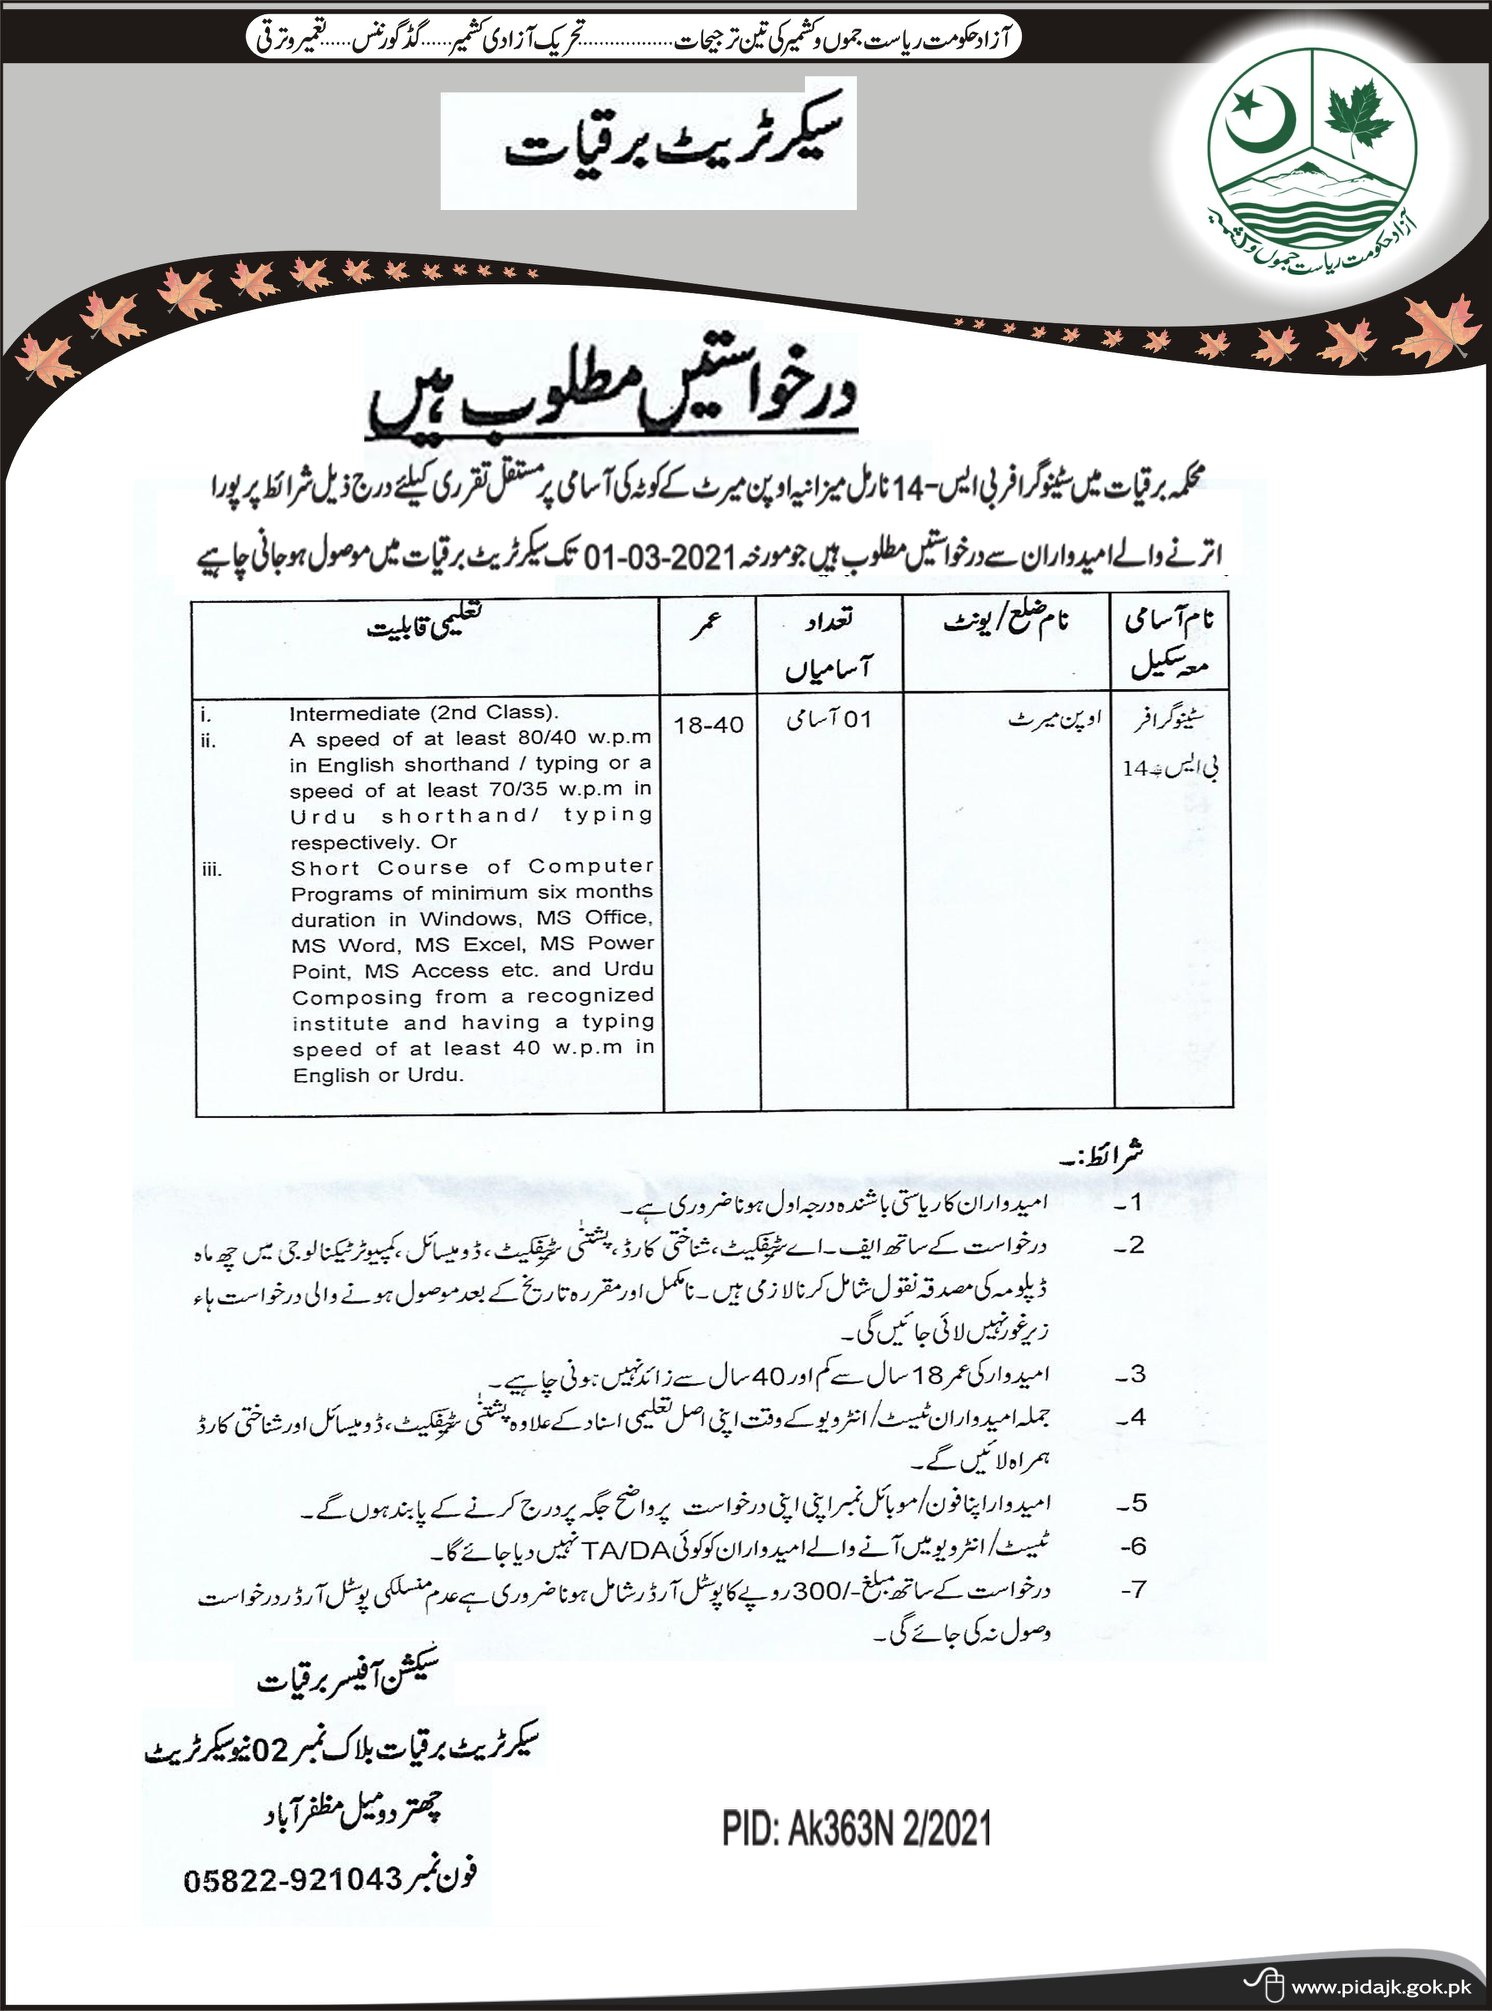 Department of Electricity AJK has invited applications for the post of Stenographer